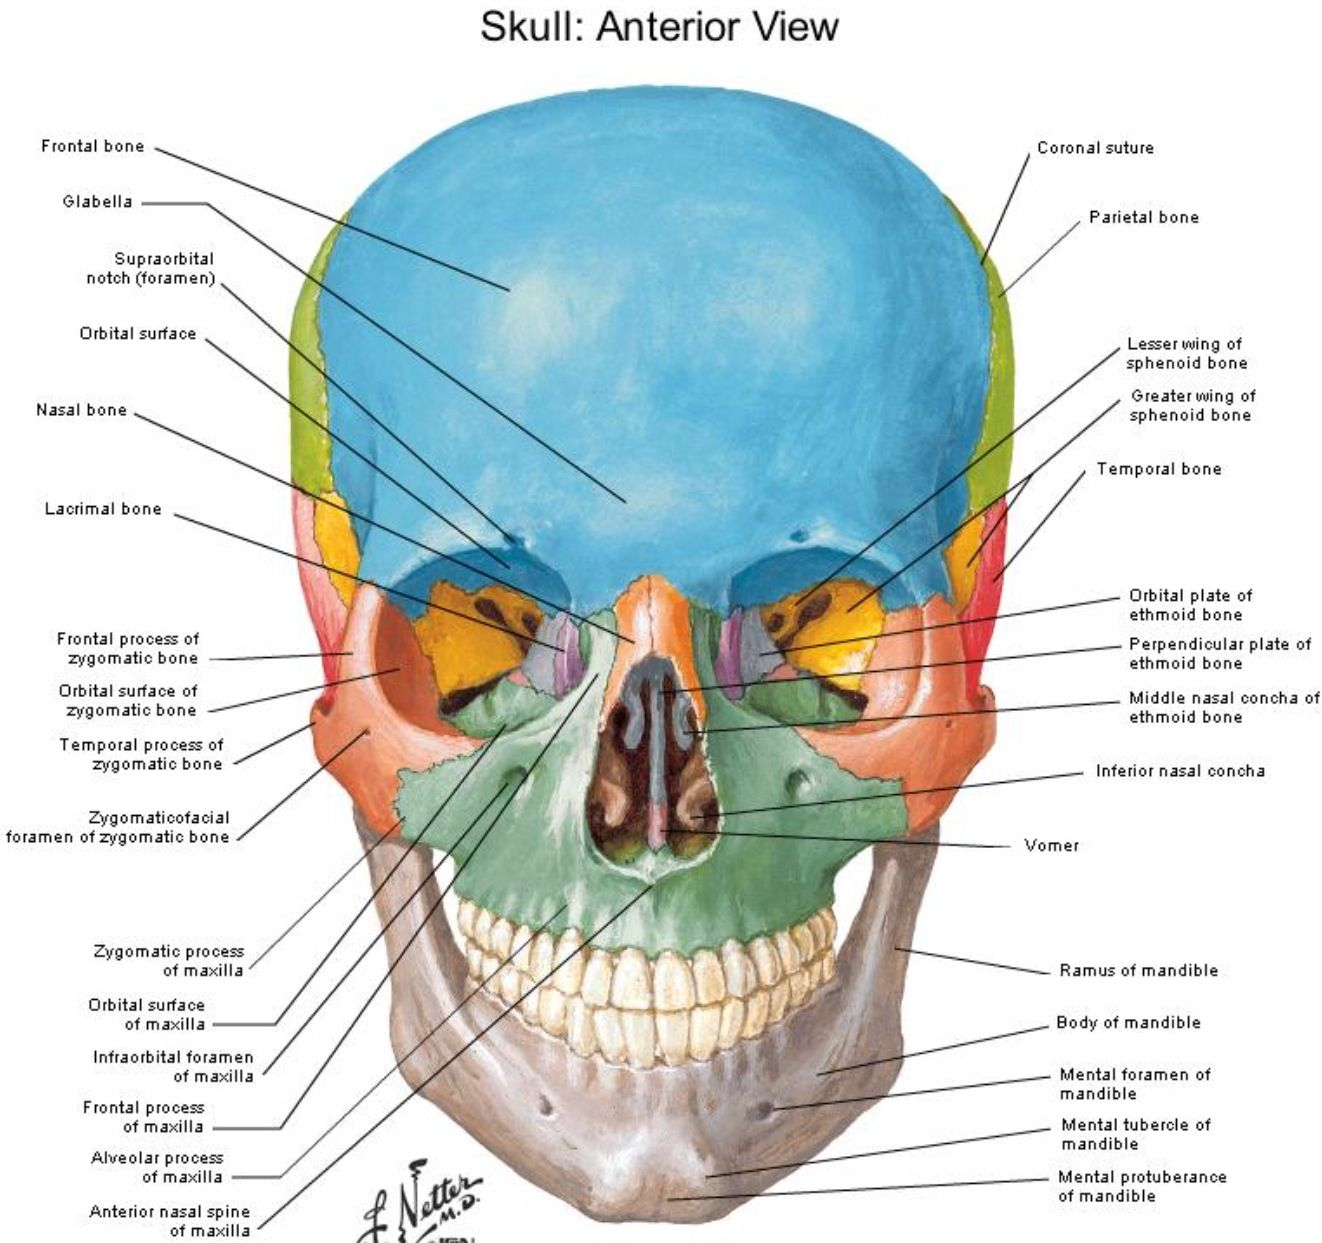 anterior view skull netter anatomy pinterest. Black Bedroom Furniture Sets. Home Design Ideas